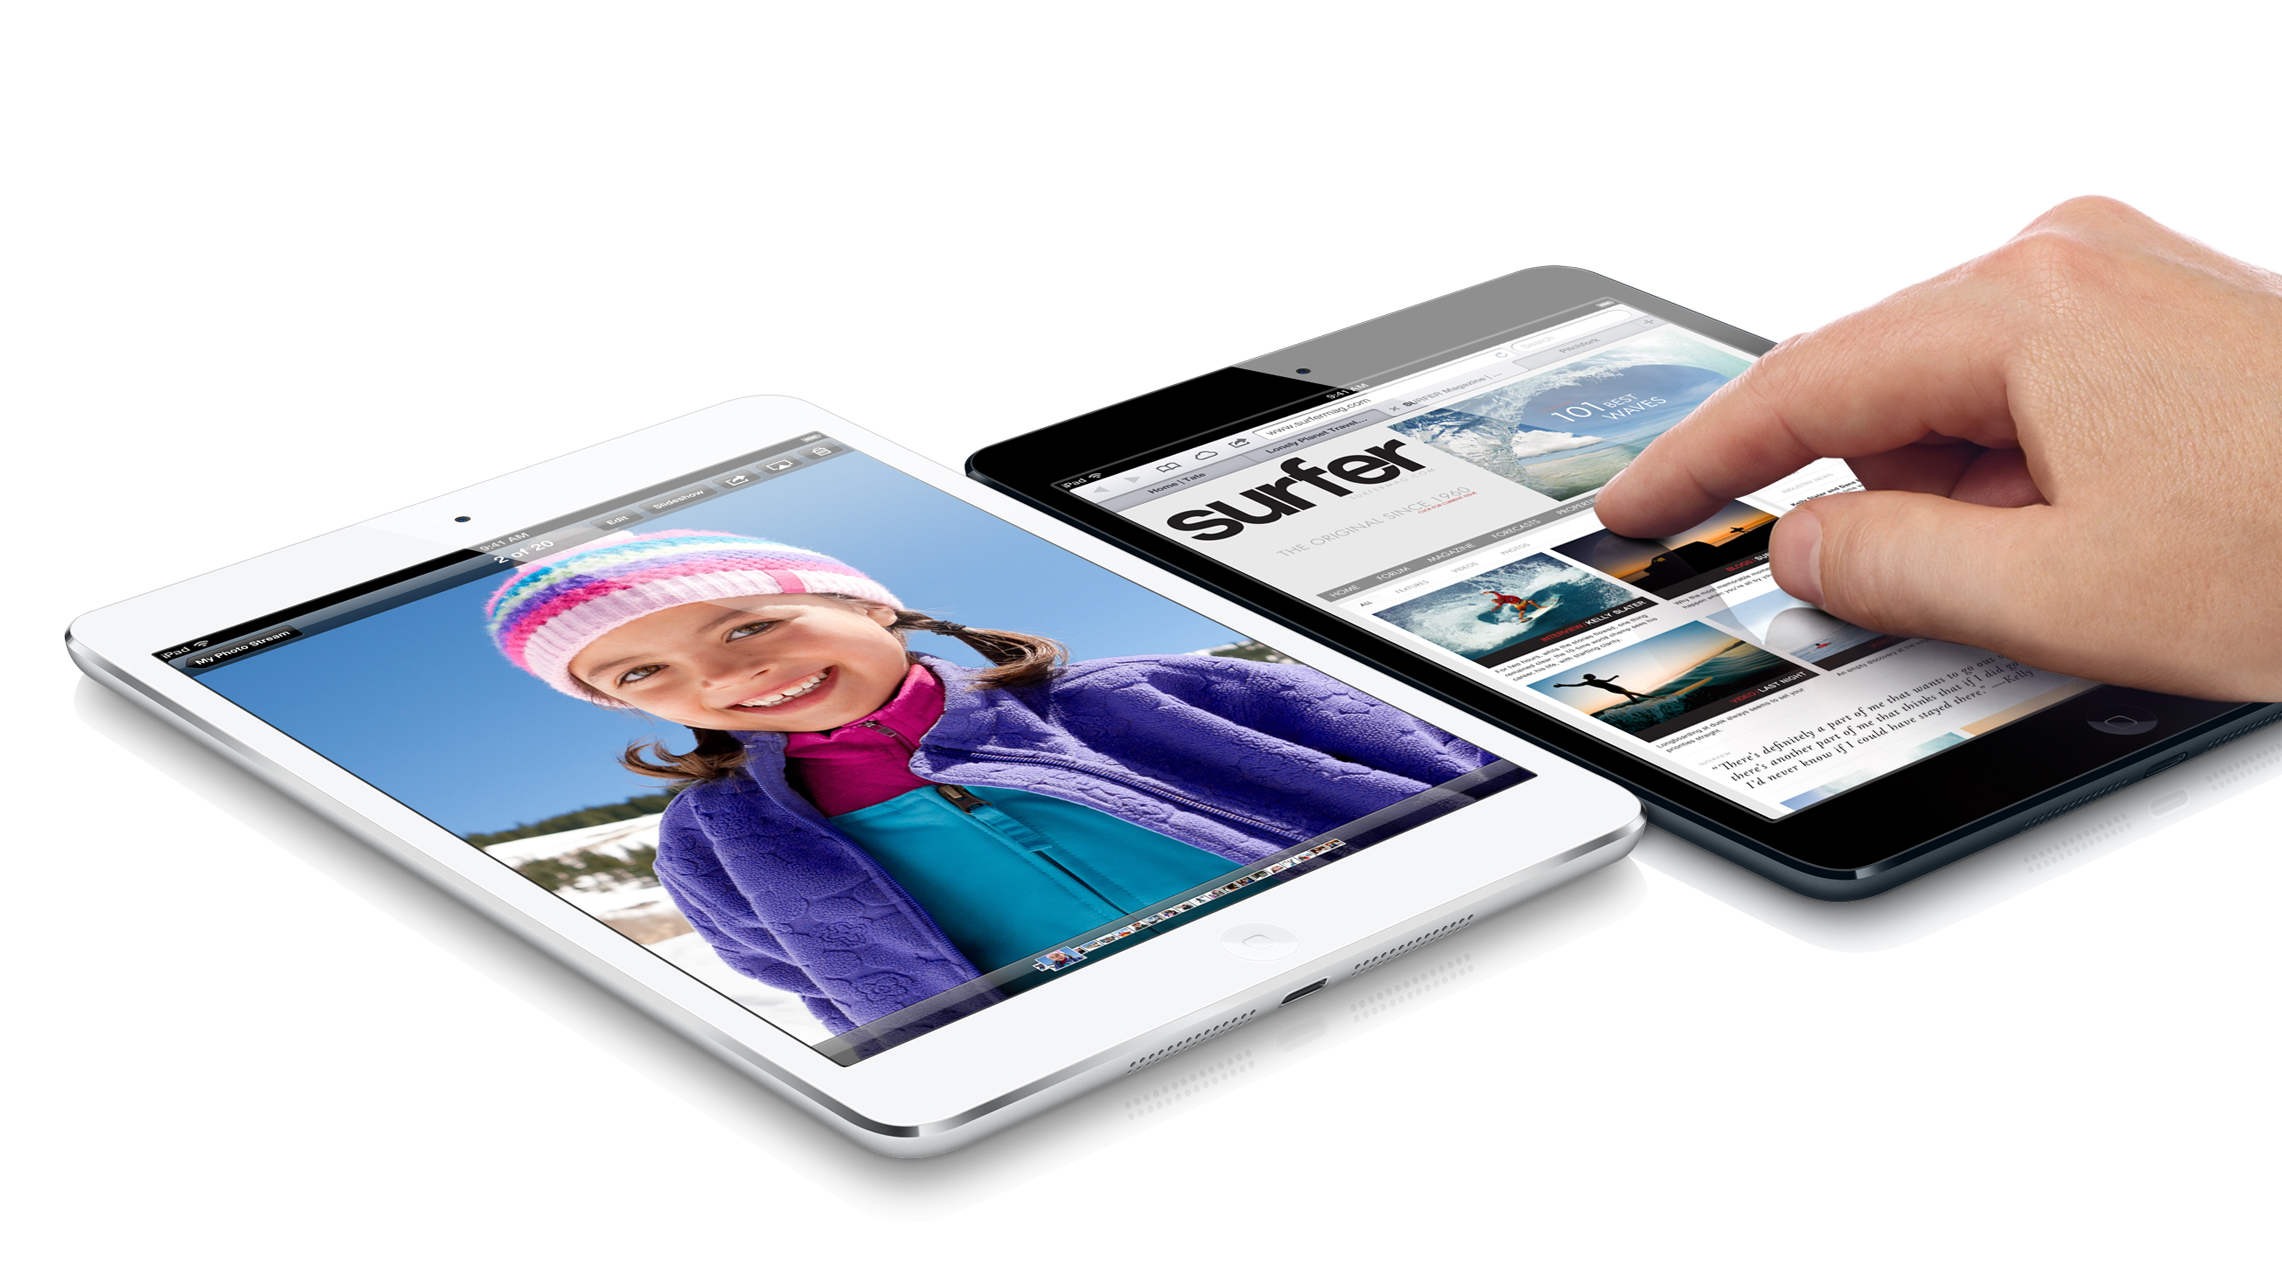 Click here to read 13 People Who Think the iPad Mini Is Actually Really Cheap